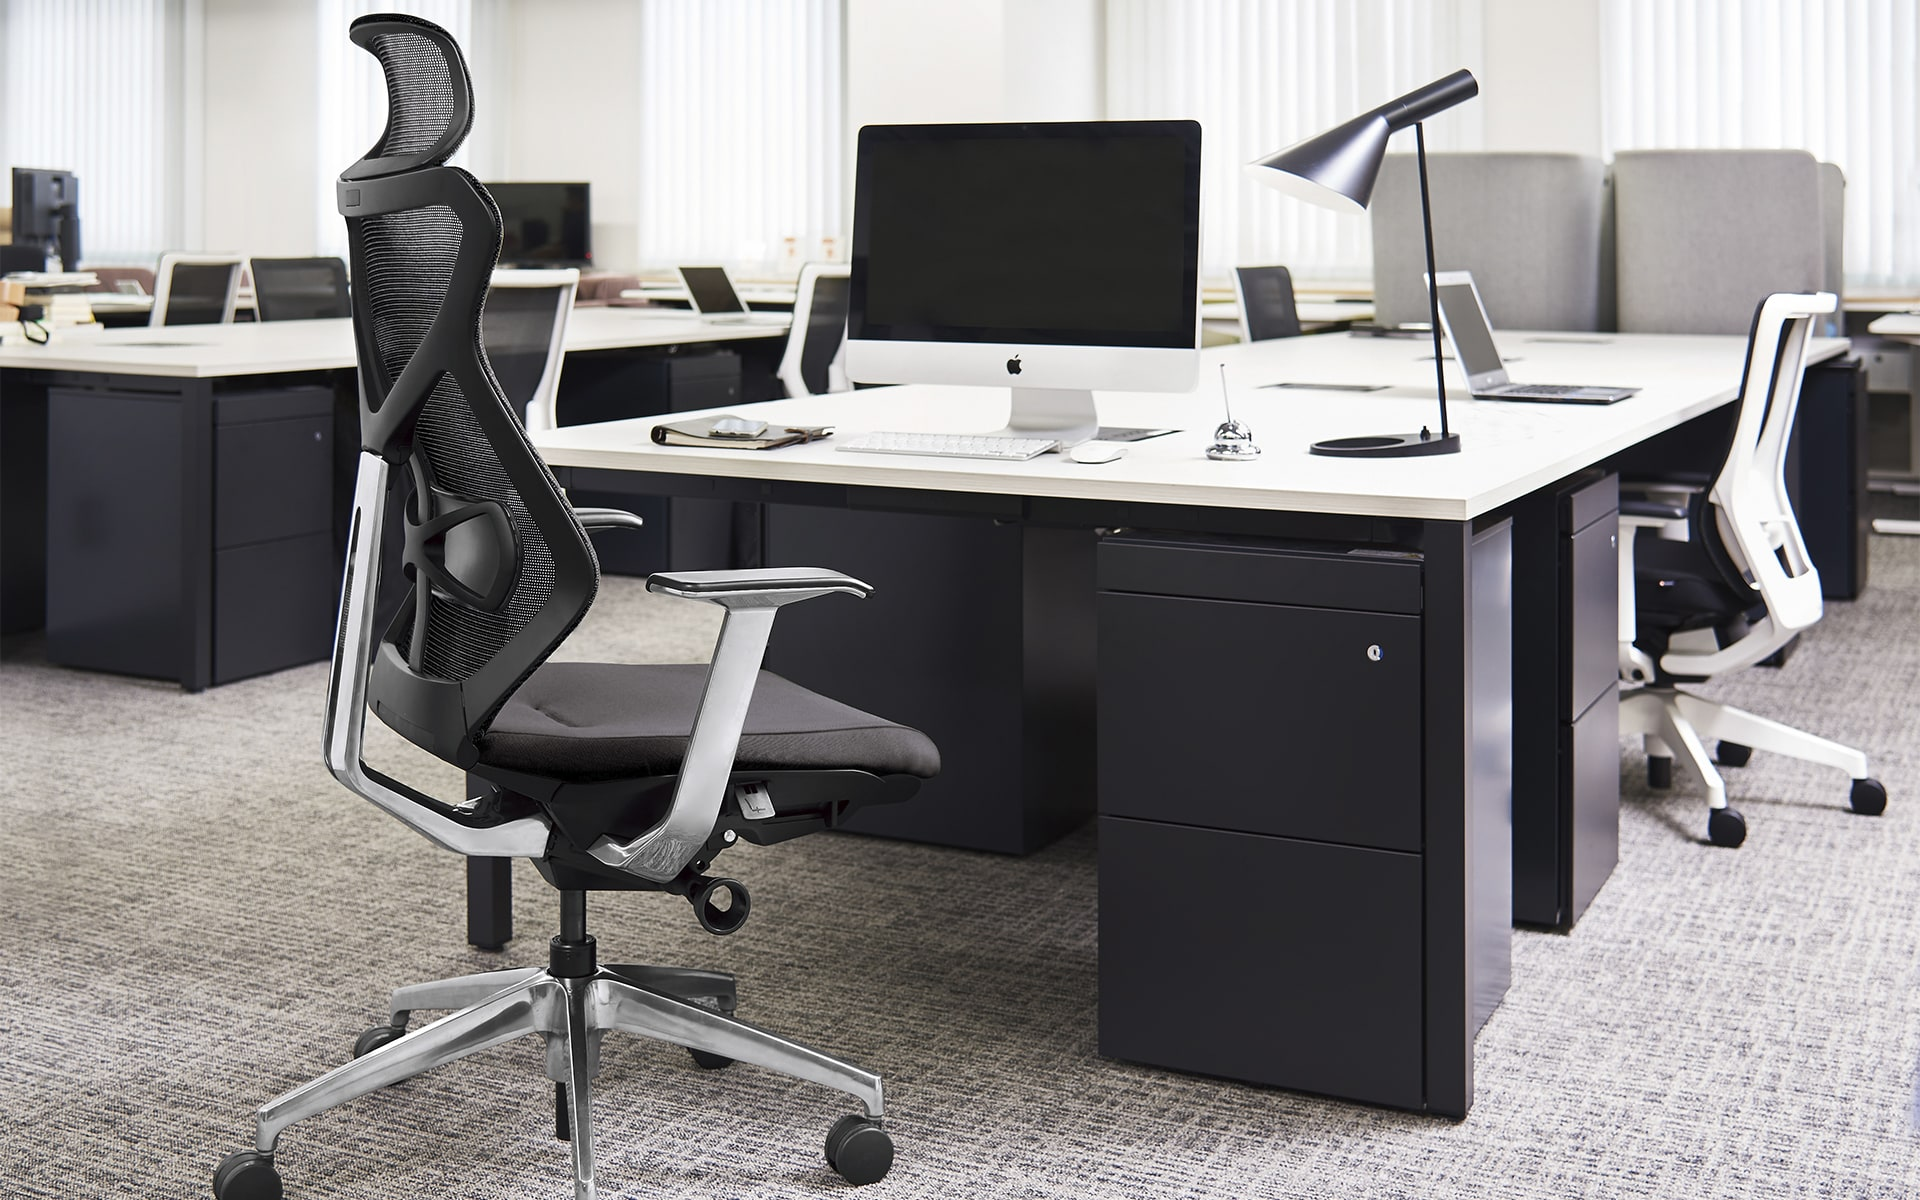 Black-and-grey ITOKI Sequa Office Chair by ITO Design in black-and-white office